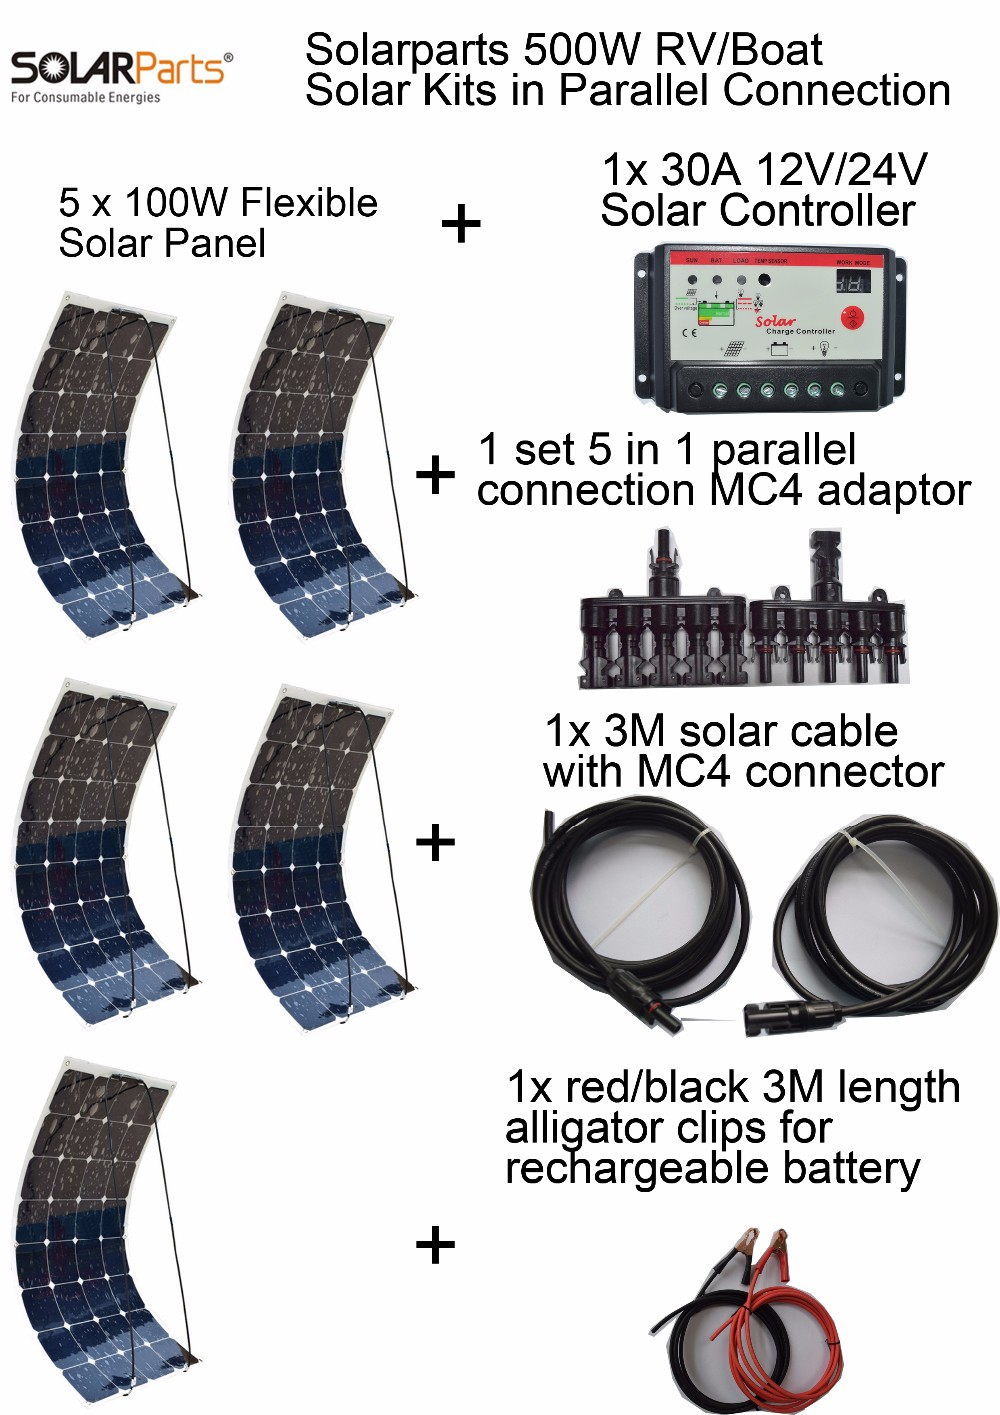 Solarparts Standard Kits 500W DIY RV/Boat Kits Solar System 100W flexible solar panel+controller+cable outdoor light led module. solarparts 100w diy rv marine kits solar system1x100w flexible solar panel 12v 1 x10a 12v 24v solar controller set cables cheap